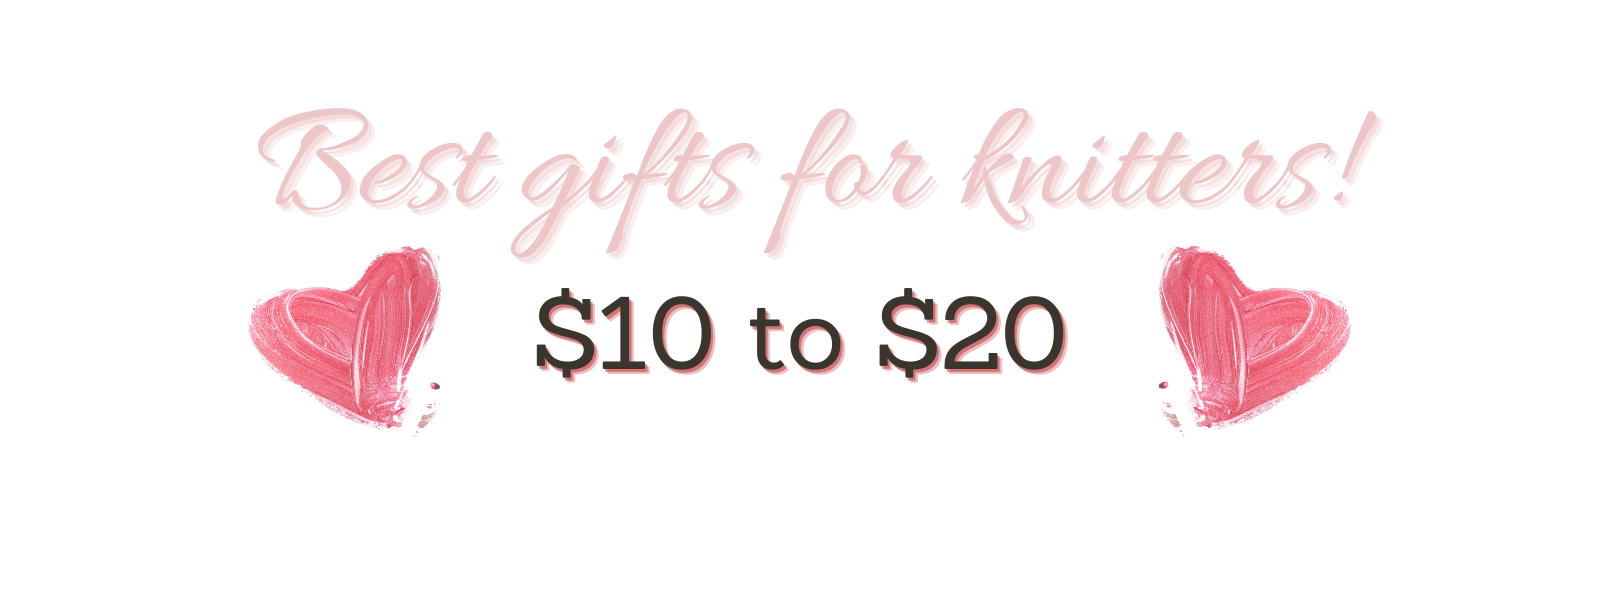 Gifts for knitters $10 to $20